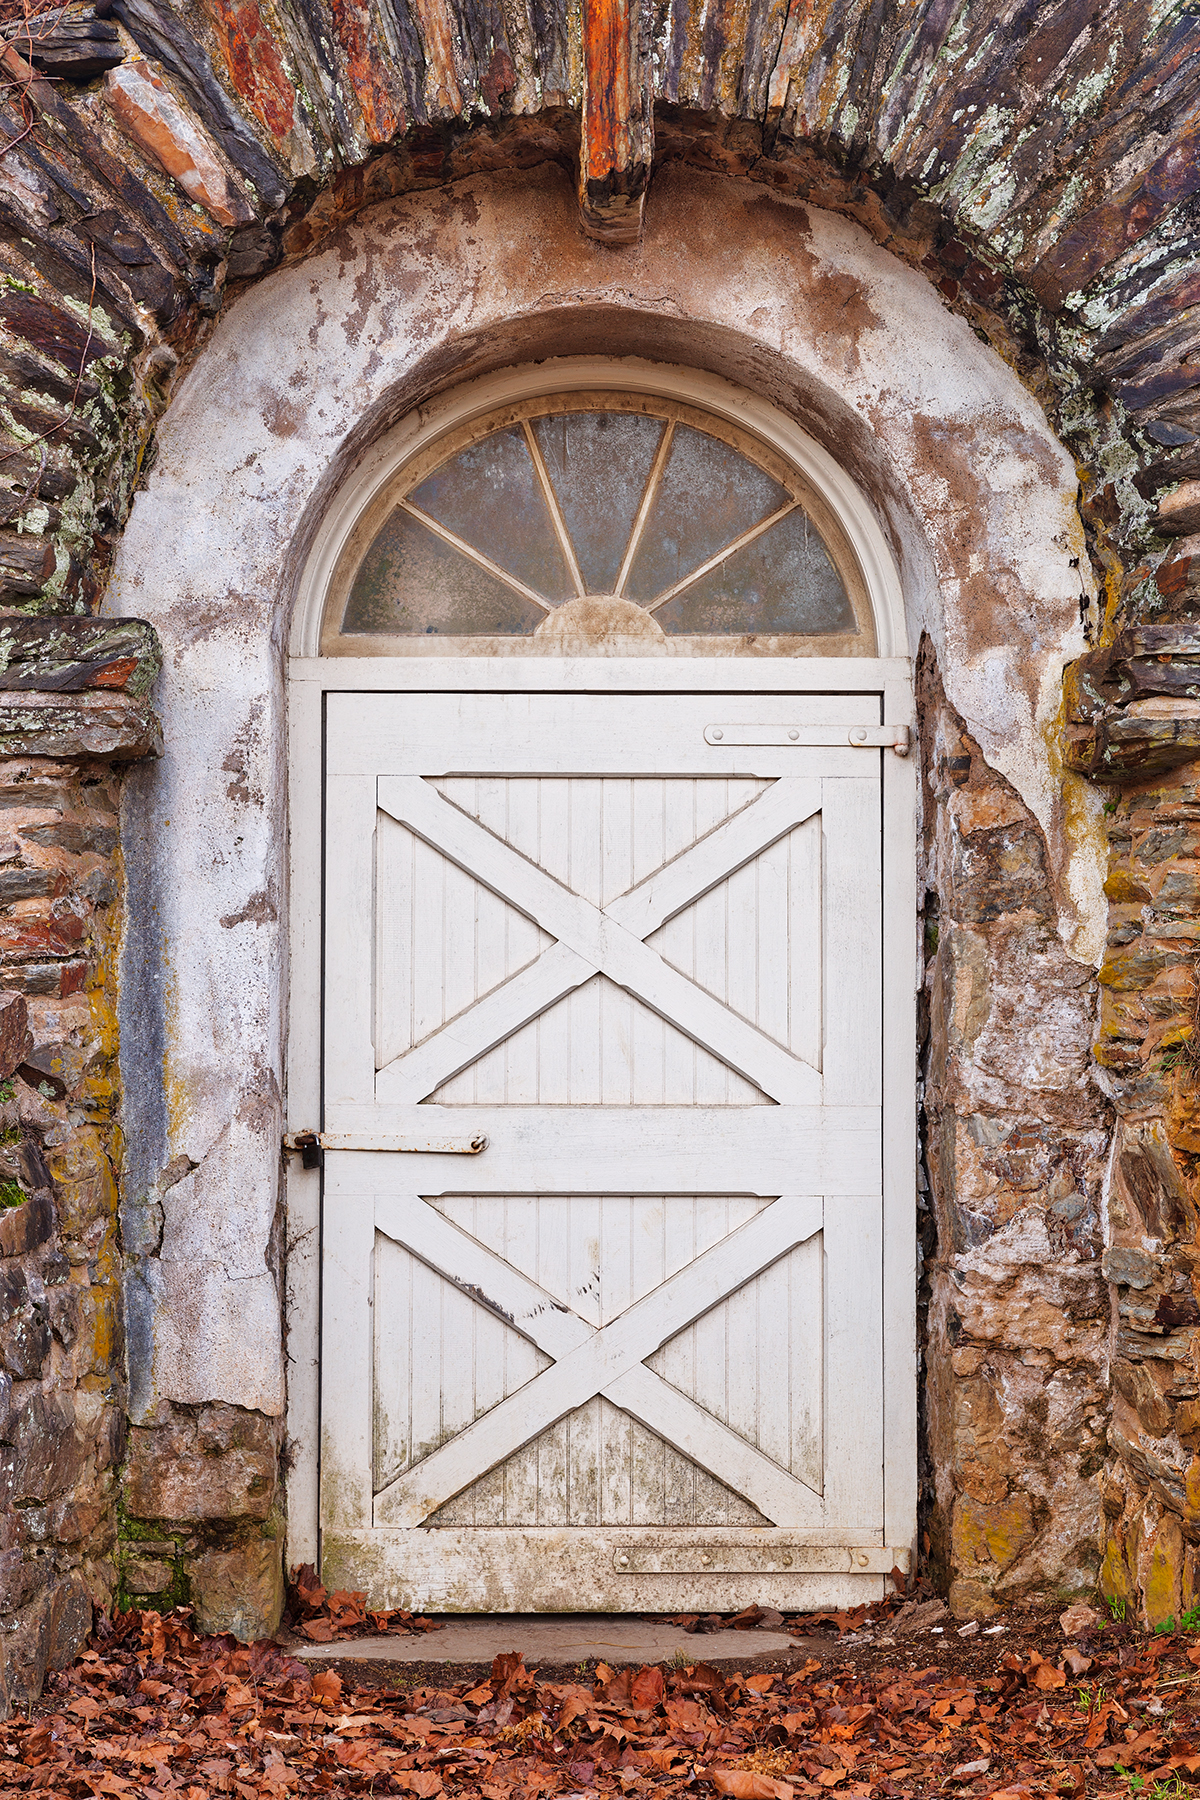 Rustic arch door - hdr photo